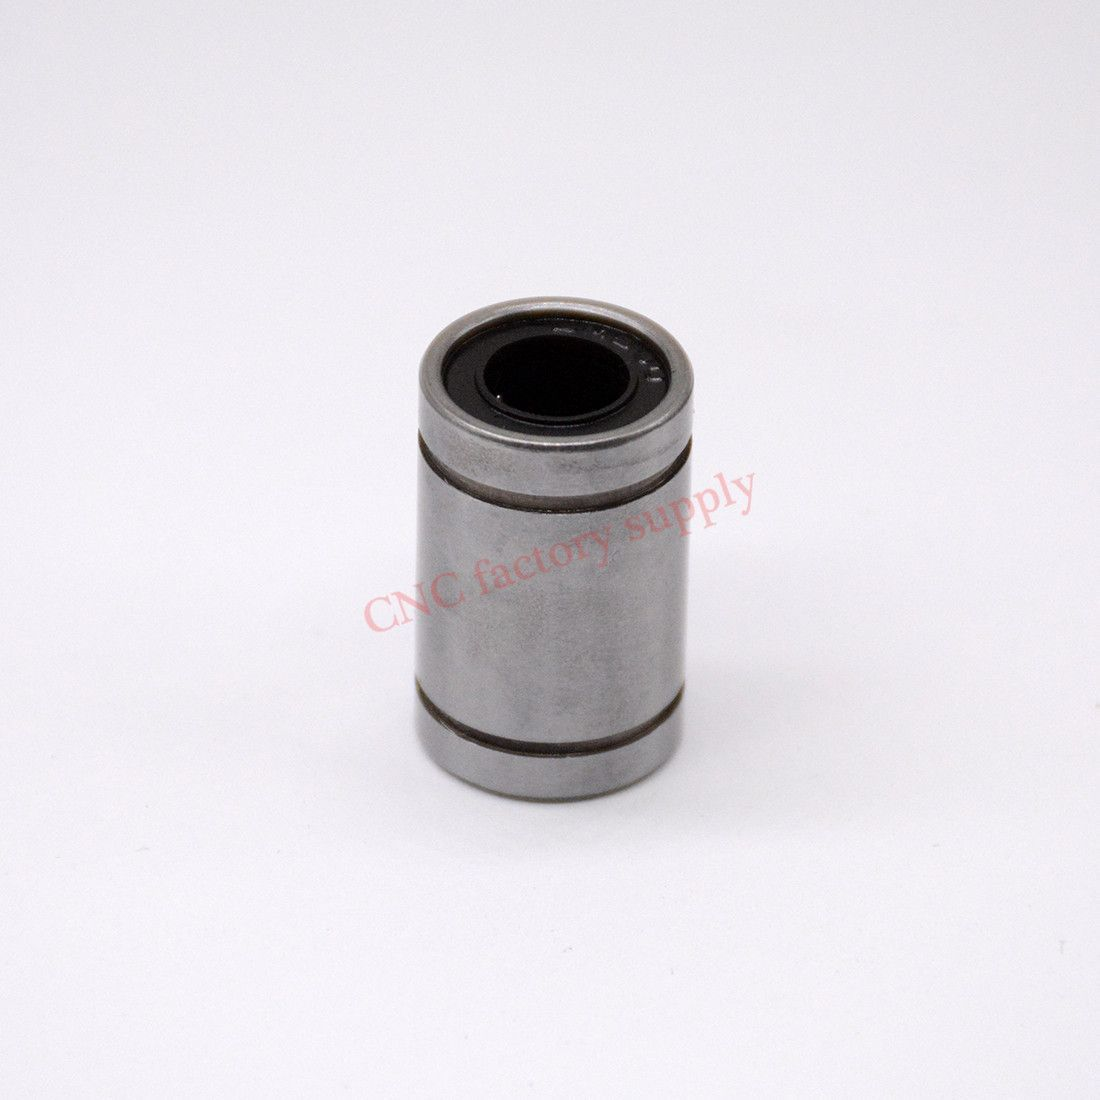 Free shipping 10pcs//lot LM8UU Linear Ball Bearing Bushing 8mm CNC Linear Bearing